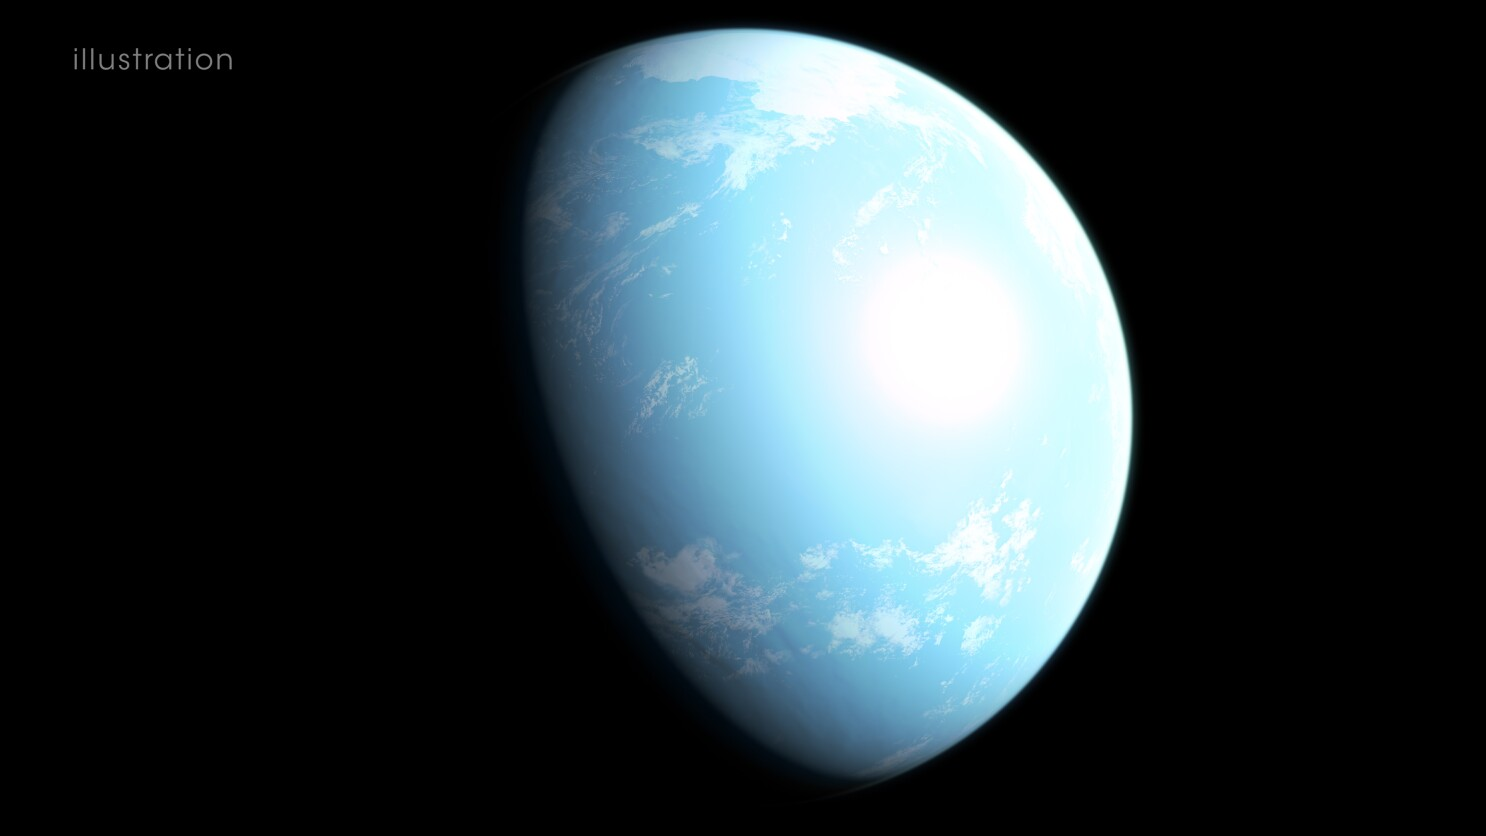 Astronomers found a planet where life might thrive, and it's